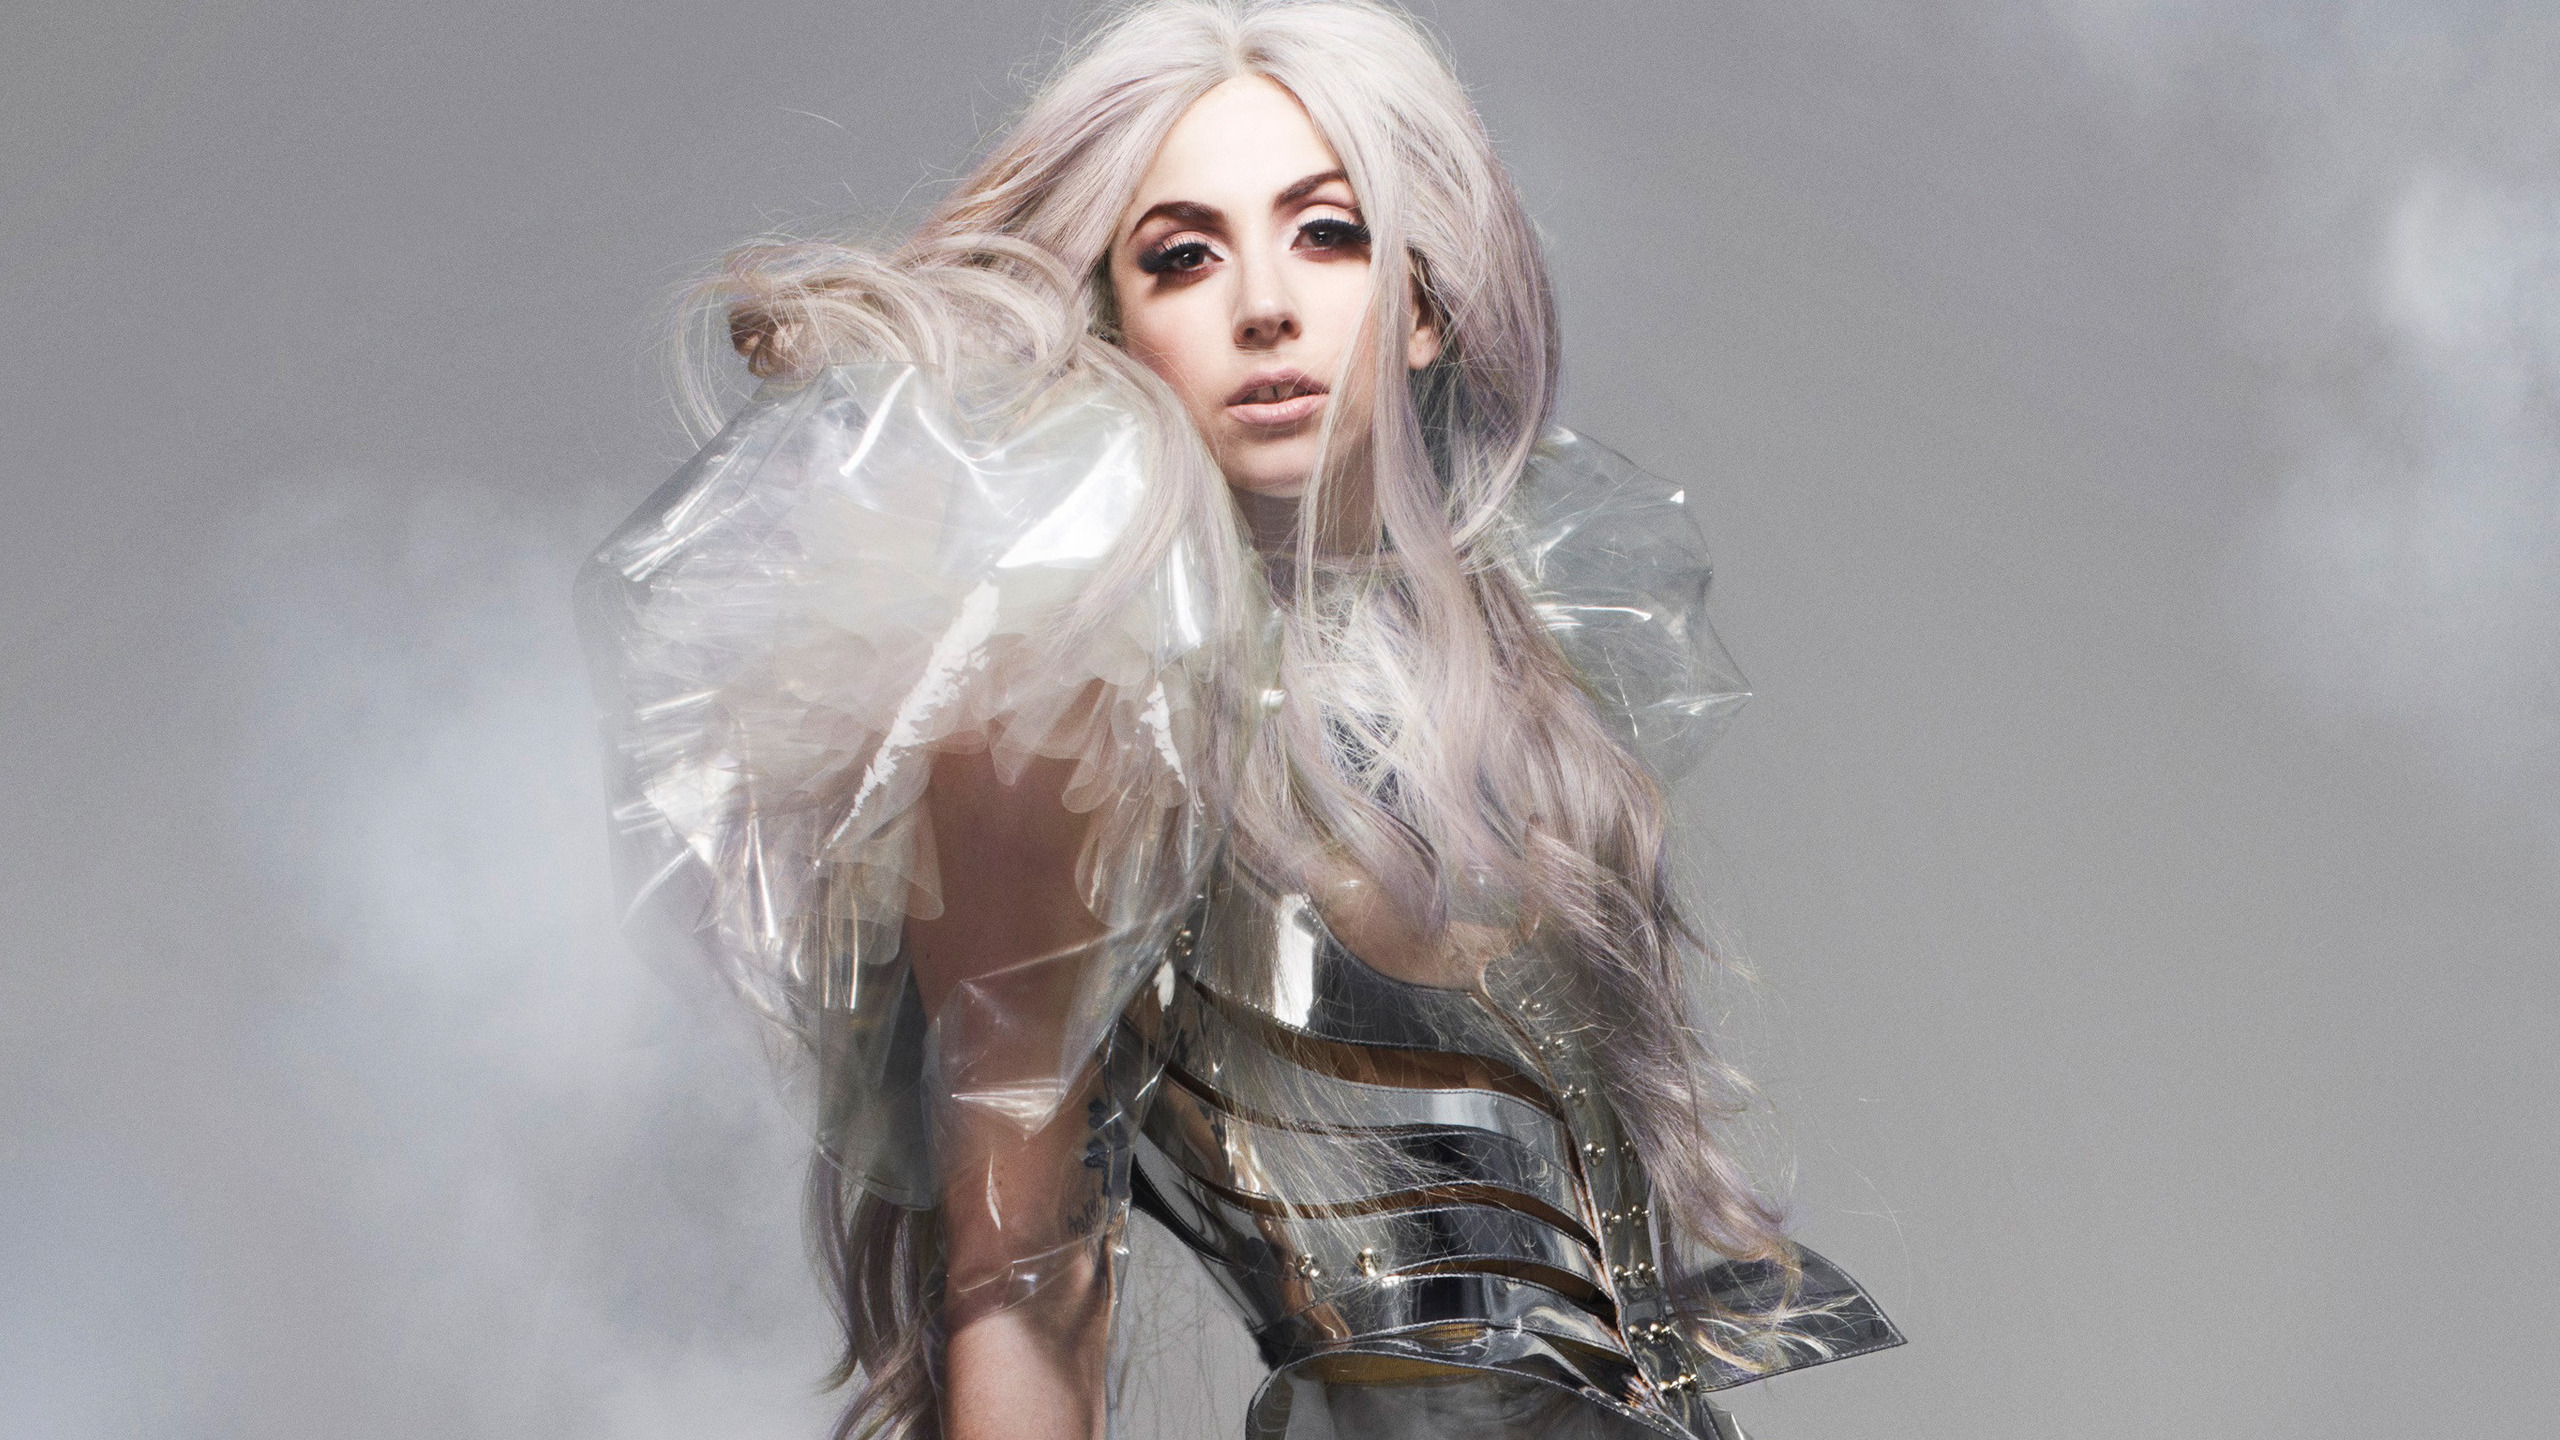 2560x1440 lady gaga 1440p resolution hd 4k wallpapers, images